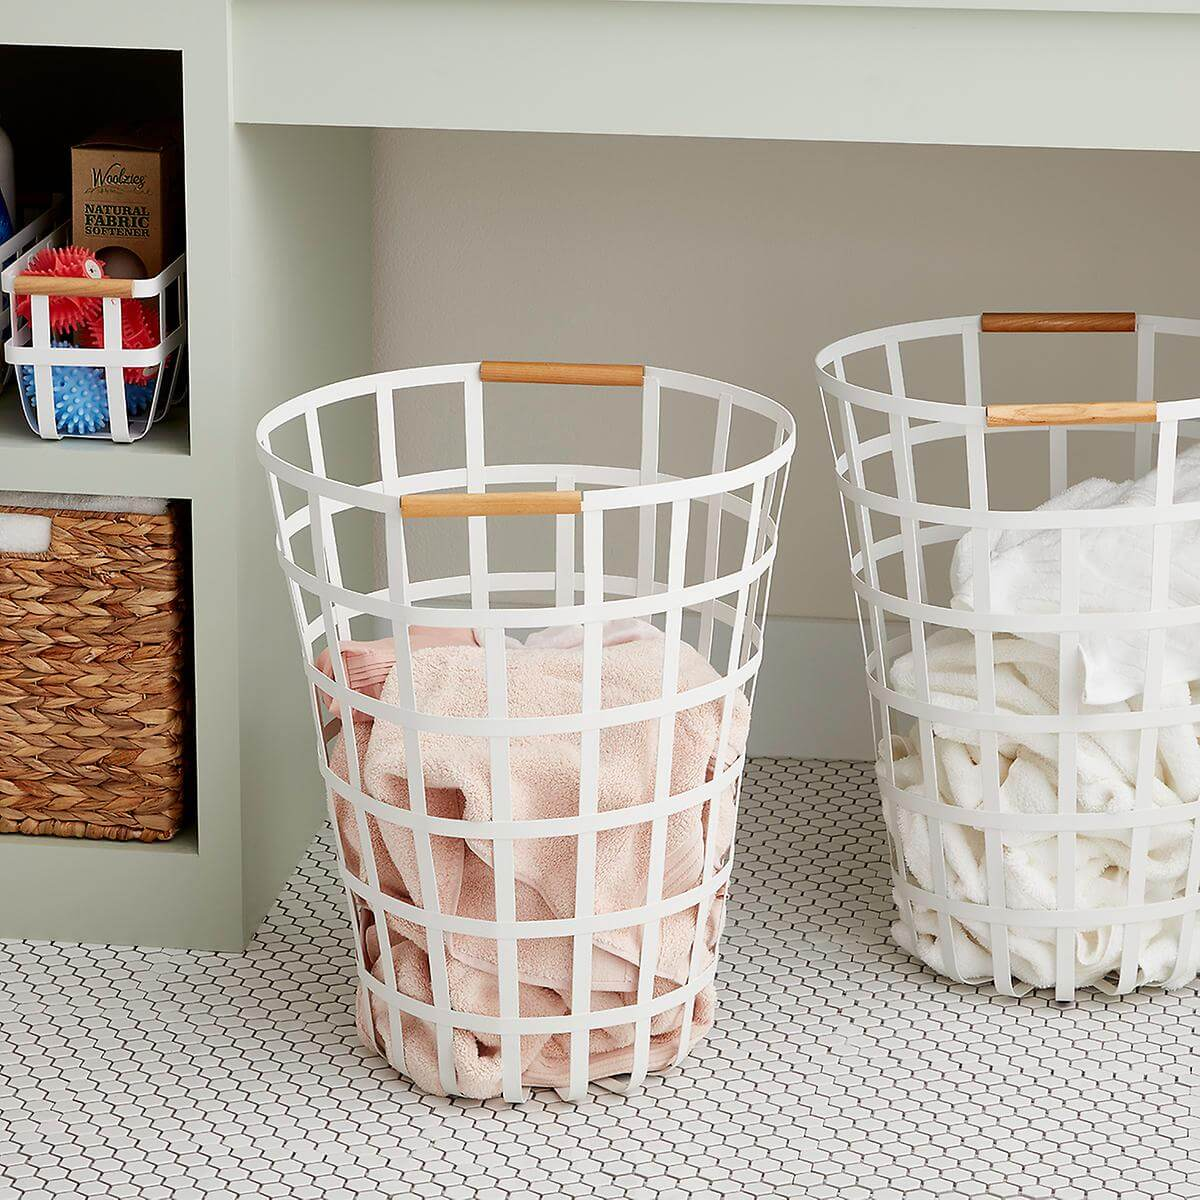 Laundry Hamper and Basket Design